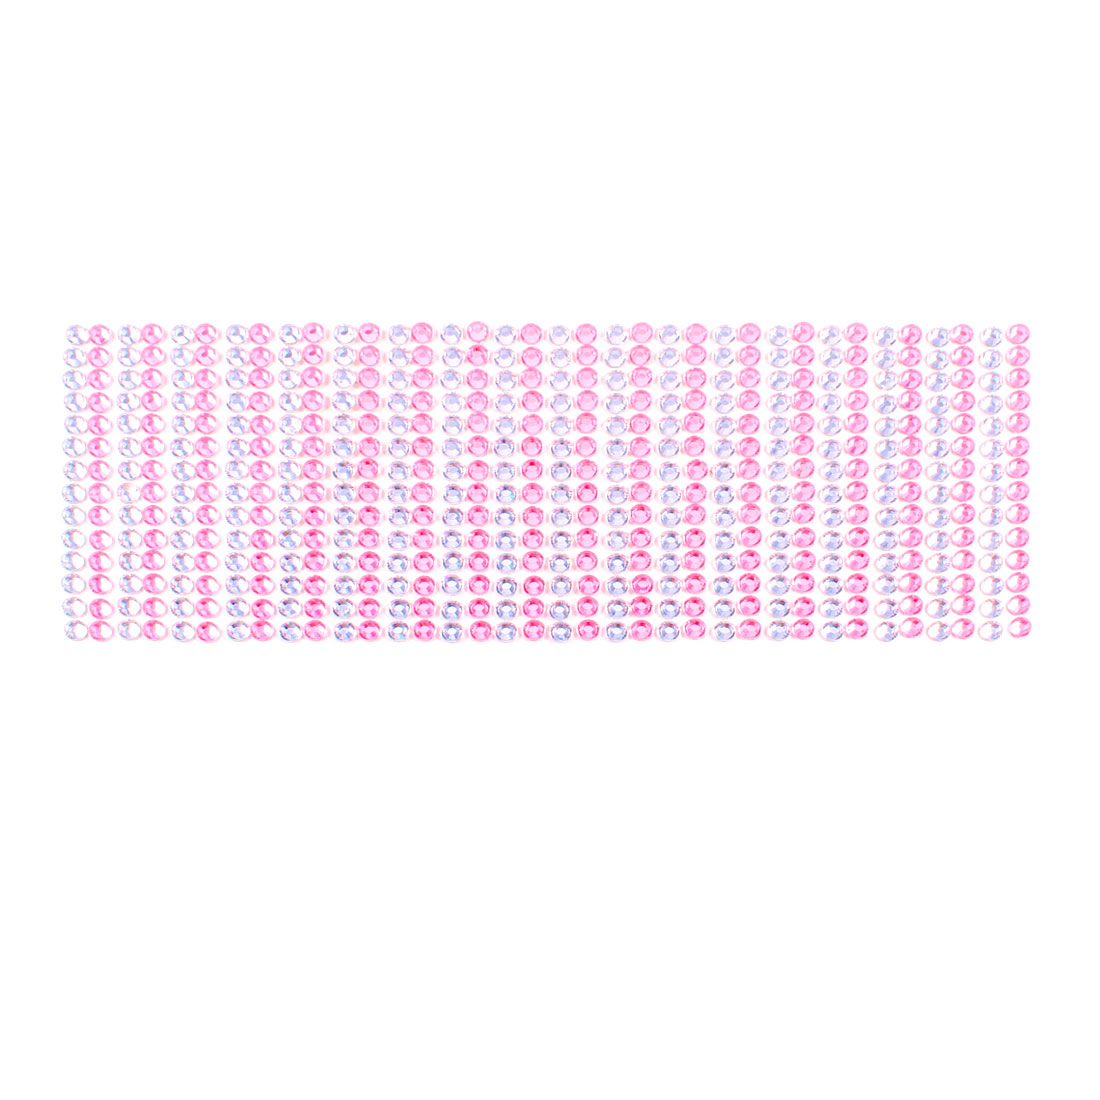 Unique Bargains 38 in 1 Pink Clear Glistening Rhinestones Sticker Decoration for Car Truck